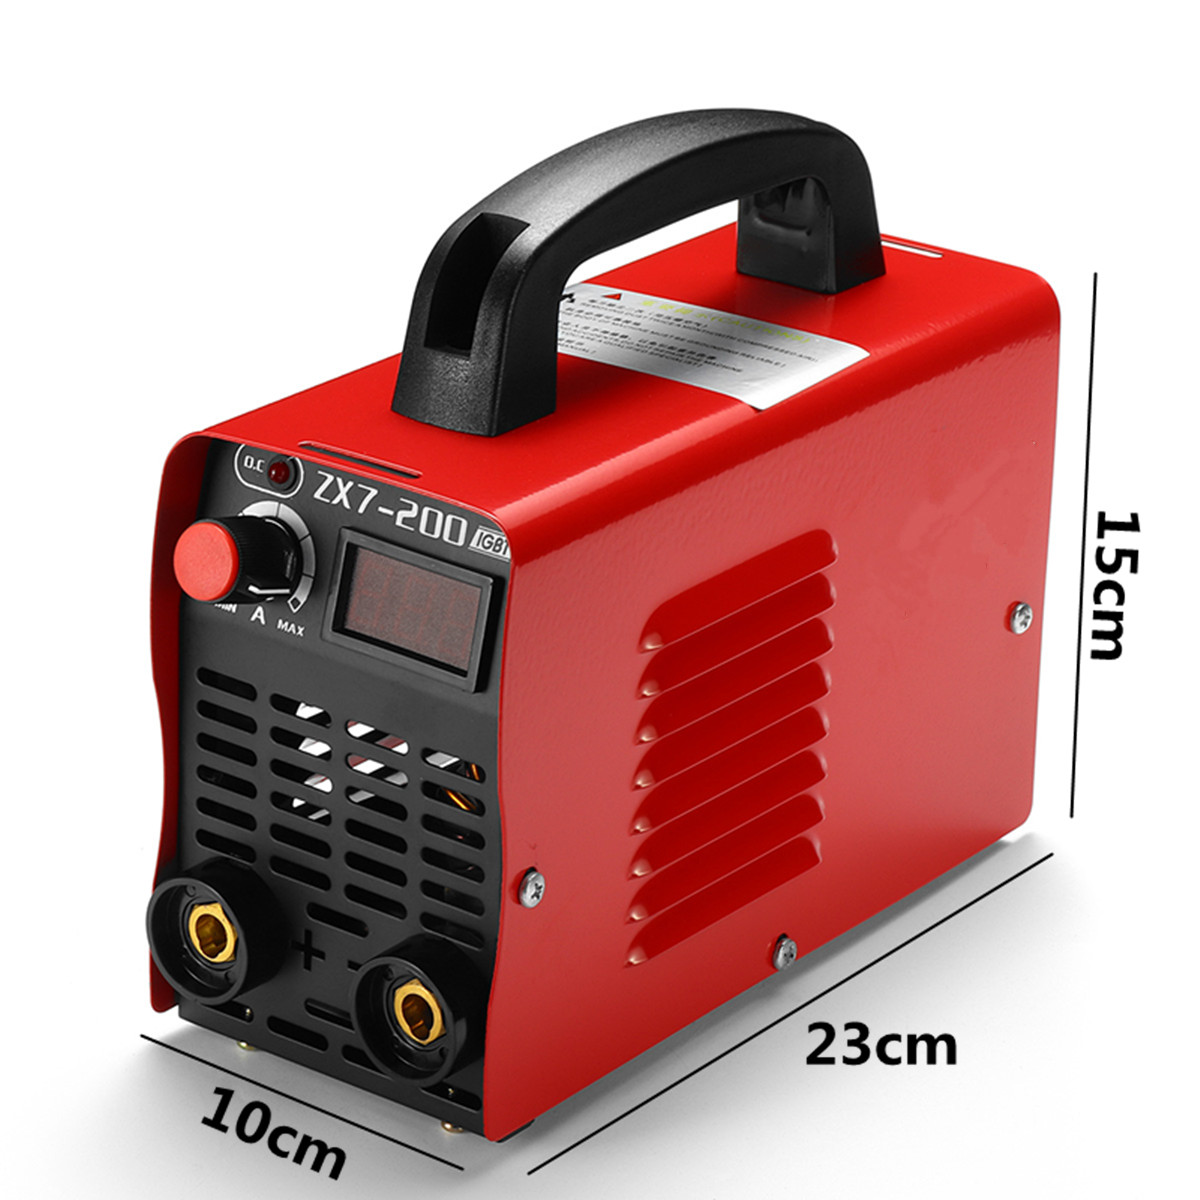 ZX7-200 220V Handheld Mini MMA Electric Welding Tool 10-200A Inverter ARC Welding Machine